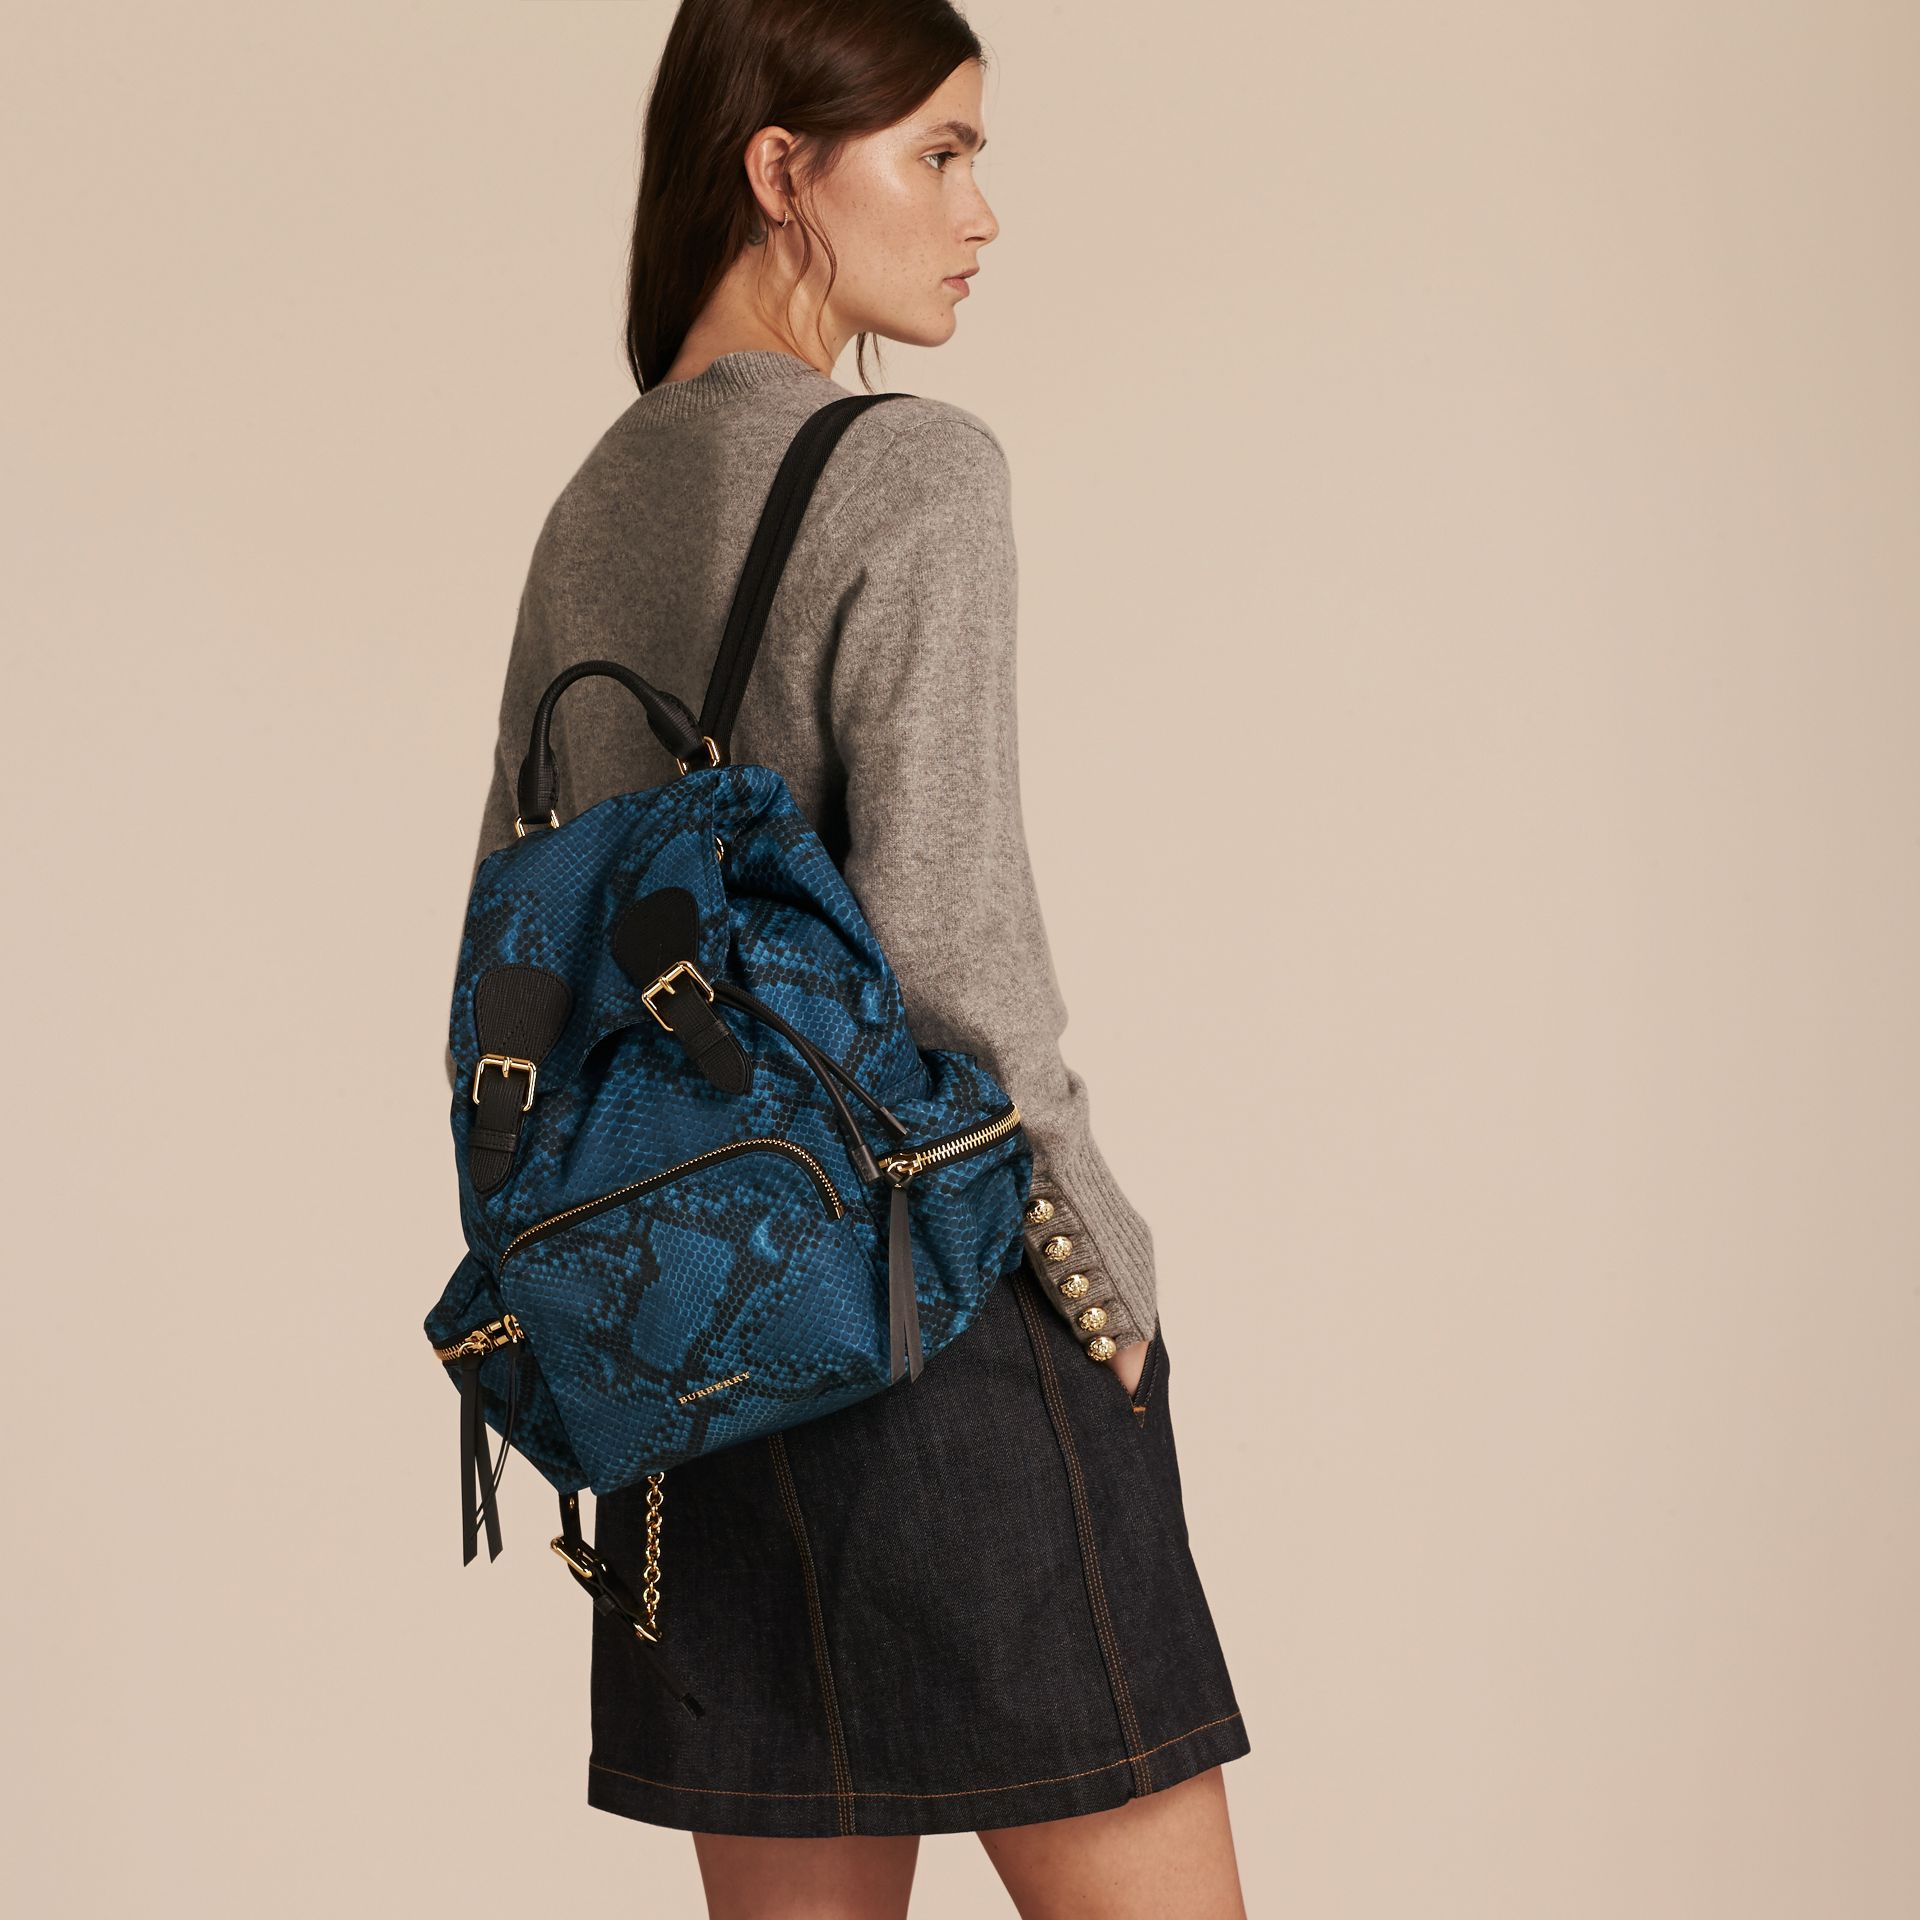 The Medium Rucksack in Python Print Nylon and Leather - Women | Burberry Canada - gallery image 3